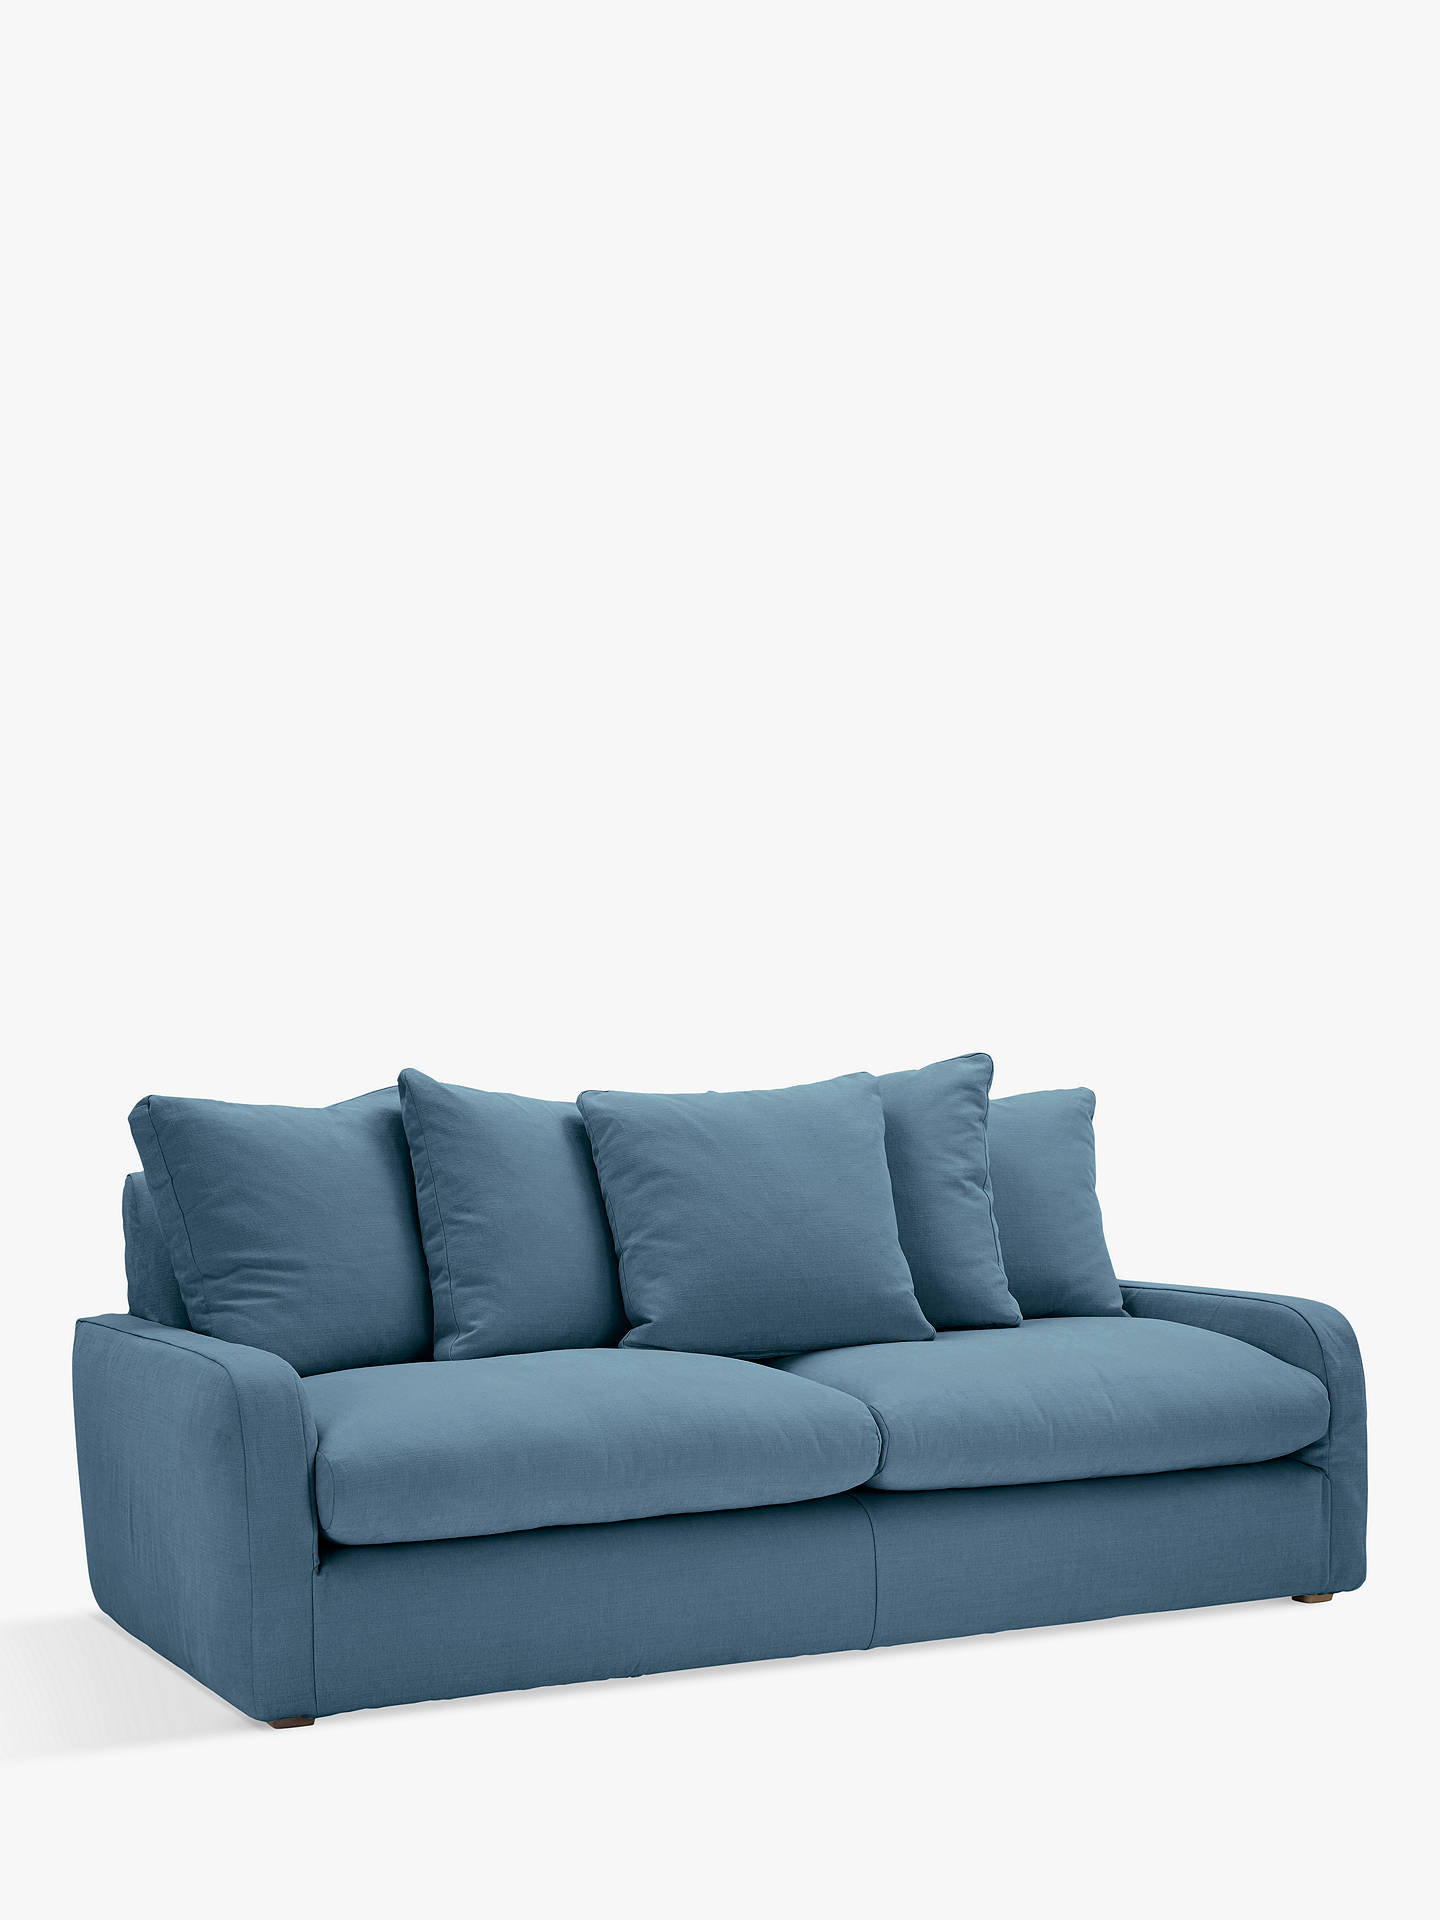 Floppy Jo Large 3 Seater Sofa By Loaf At John Lewis Brushed Cotton Nordic Blue